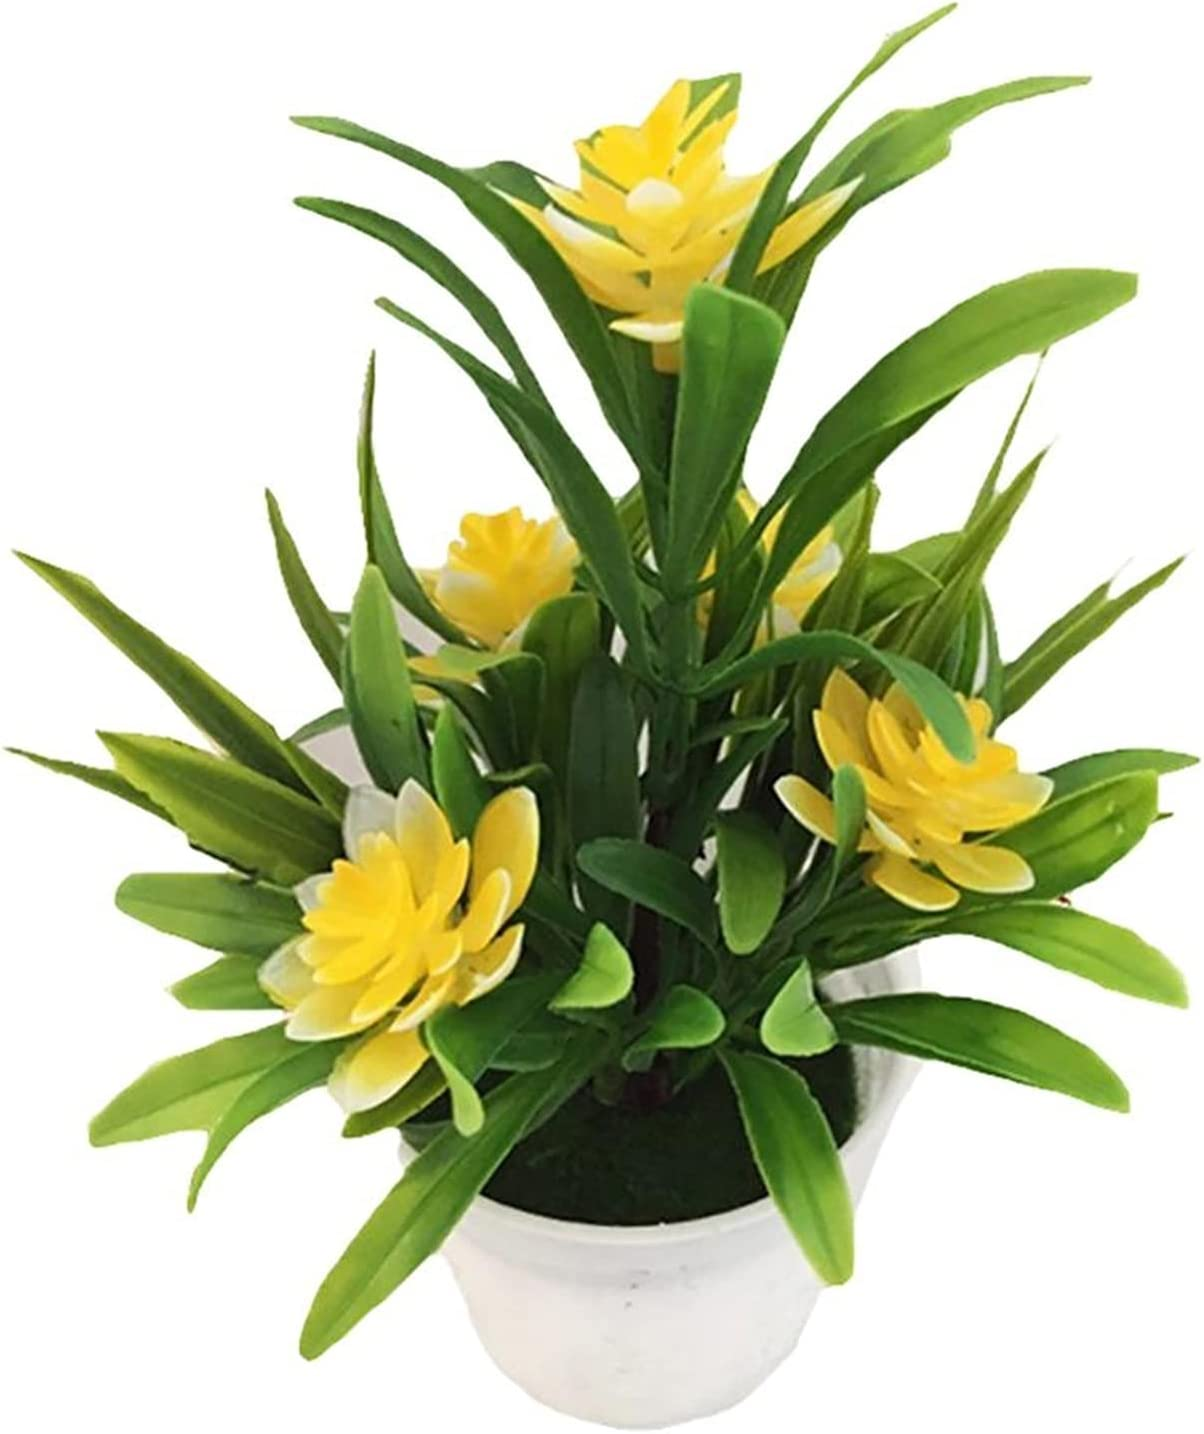 MFLJU Artificial Max 44% OFF Flowers Faux 1PC Plants in P Low price